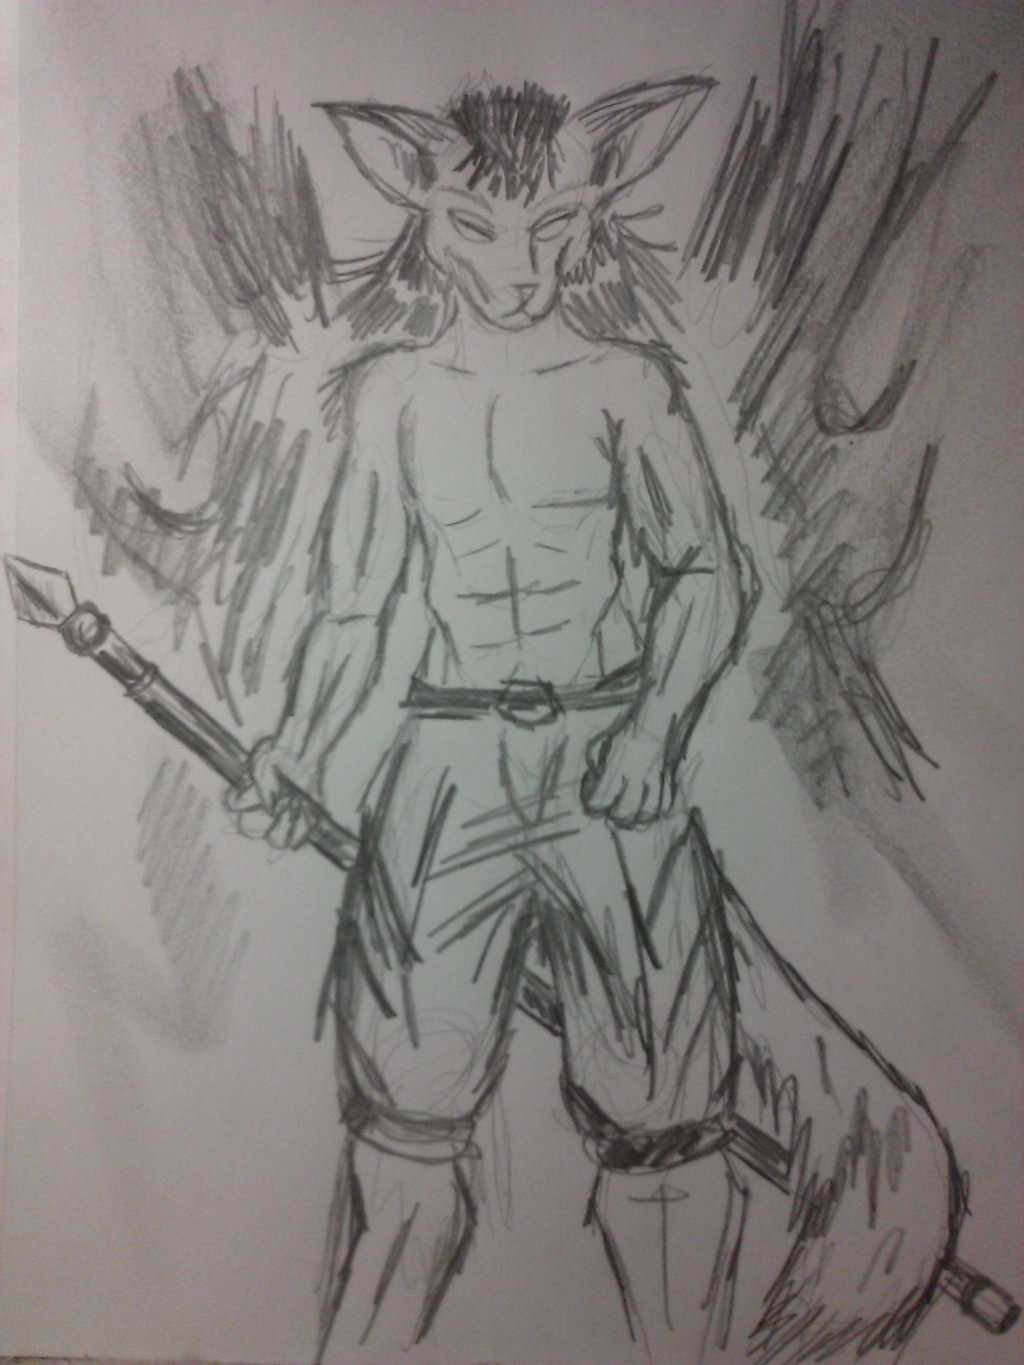 Most recent image: Martial arts canid with no name.